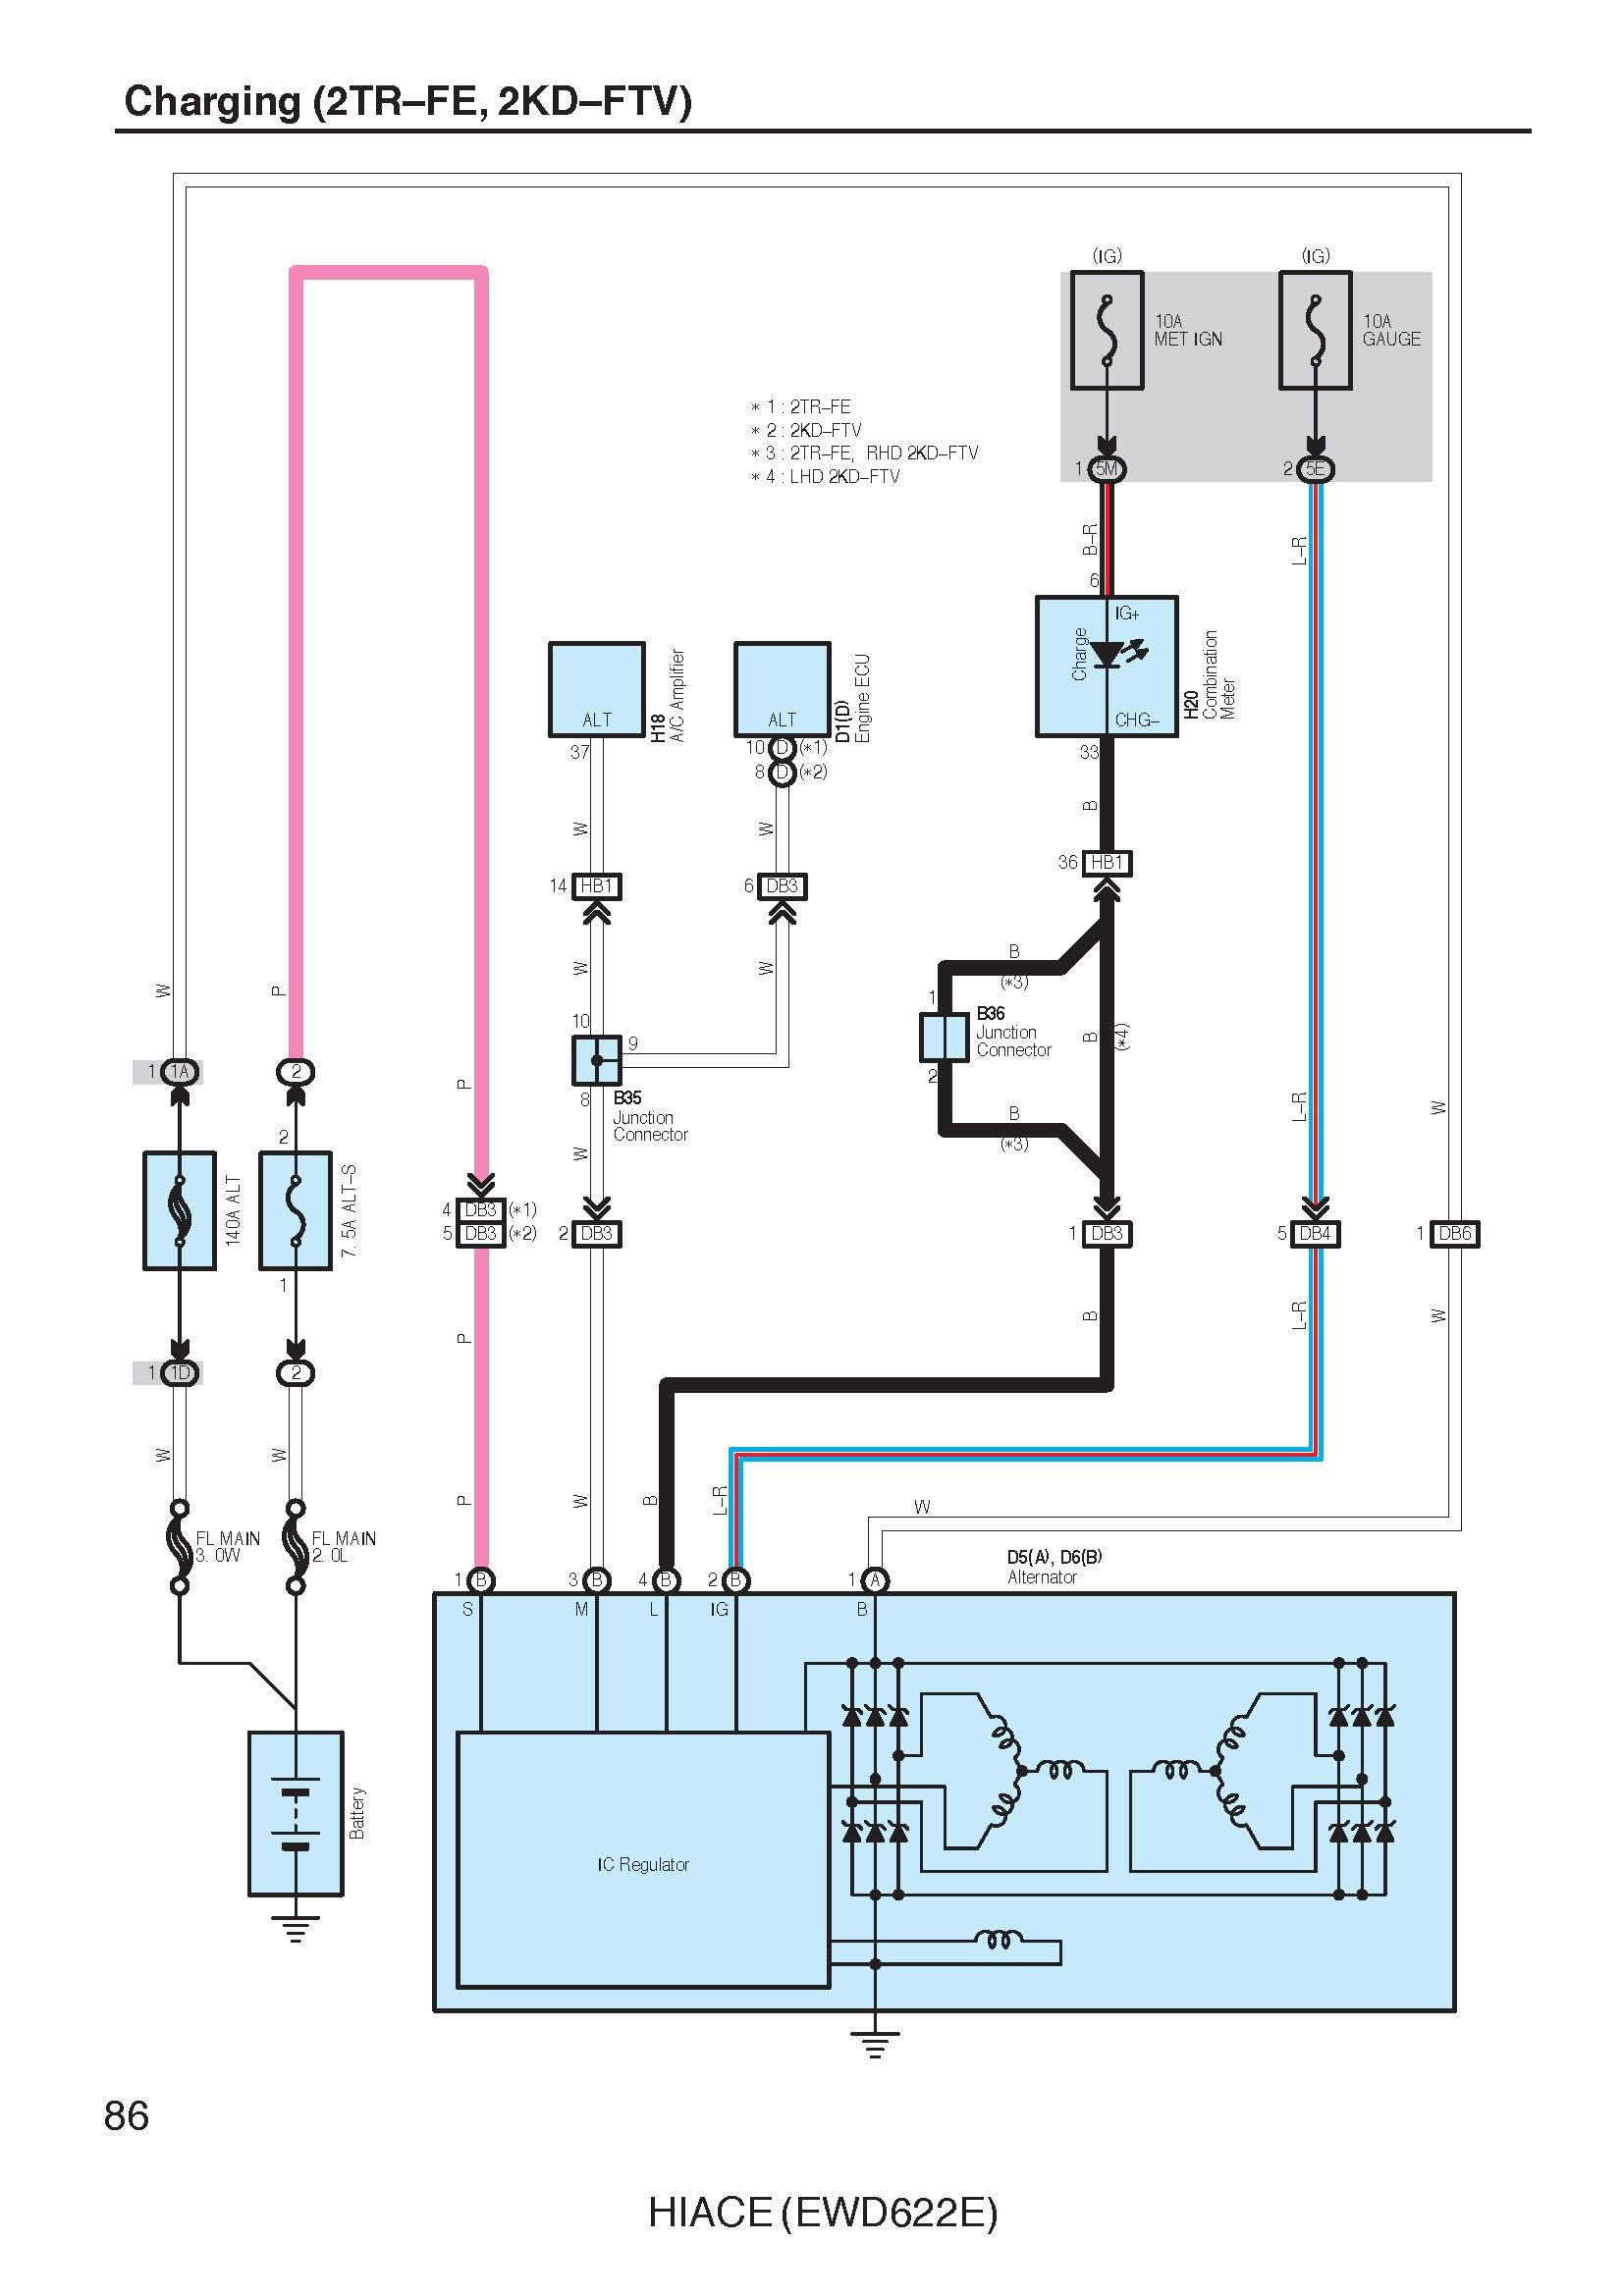 2006 Toyota Hiace Full Original And Coloured Electrical Wiring Diagrams  Free Pdf